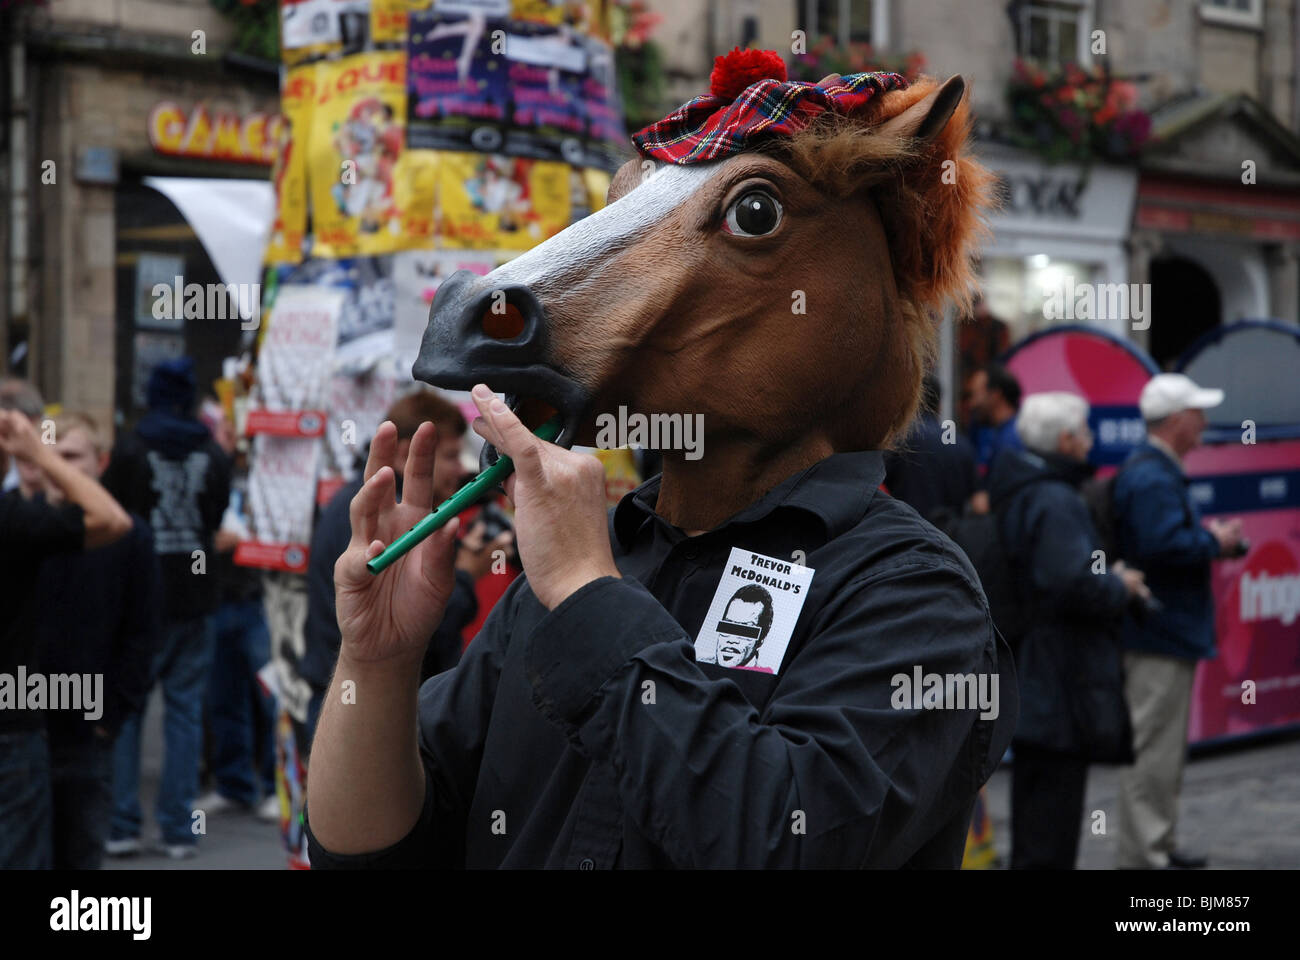 Performer with a horses head playing a penny whistle during the Edinburgh Fringe Festival in Scotland Stock Photo